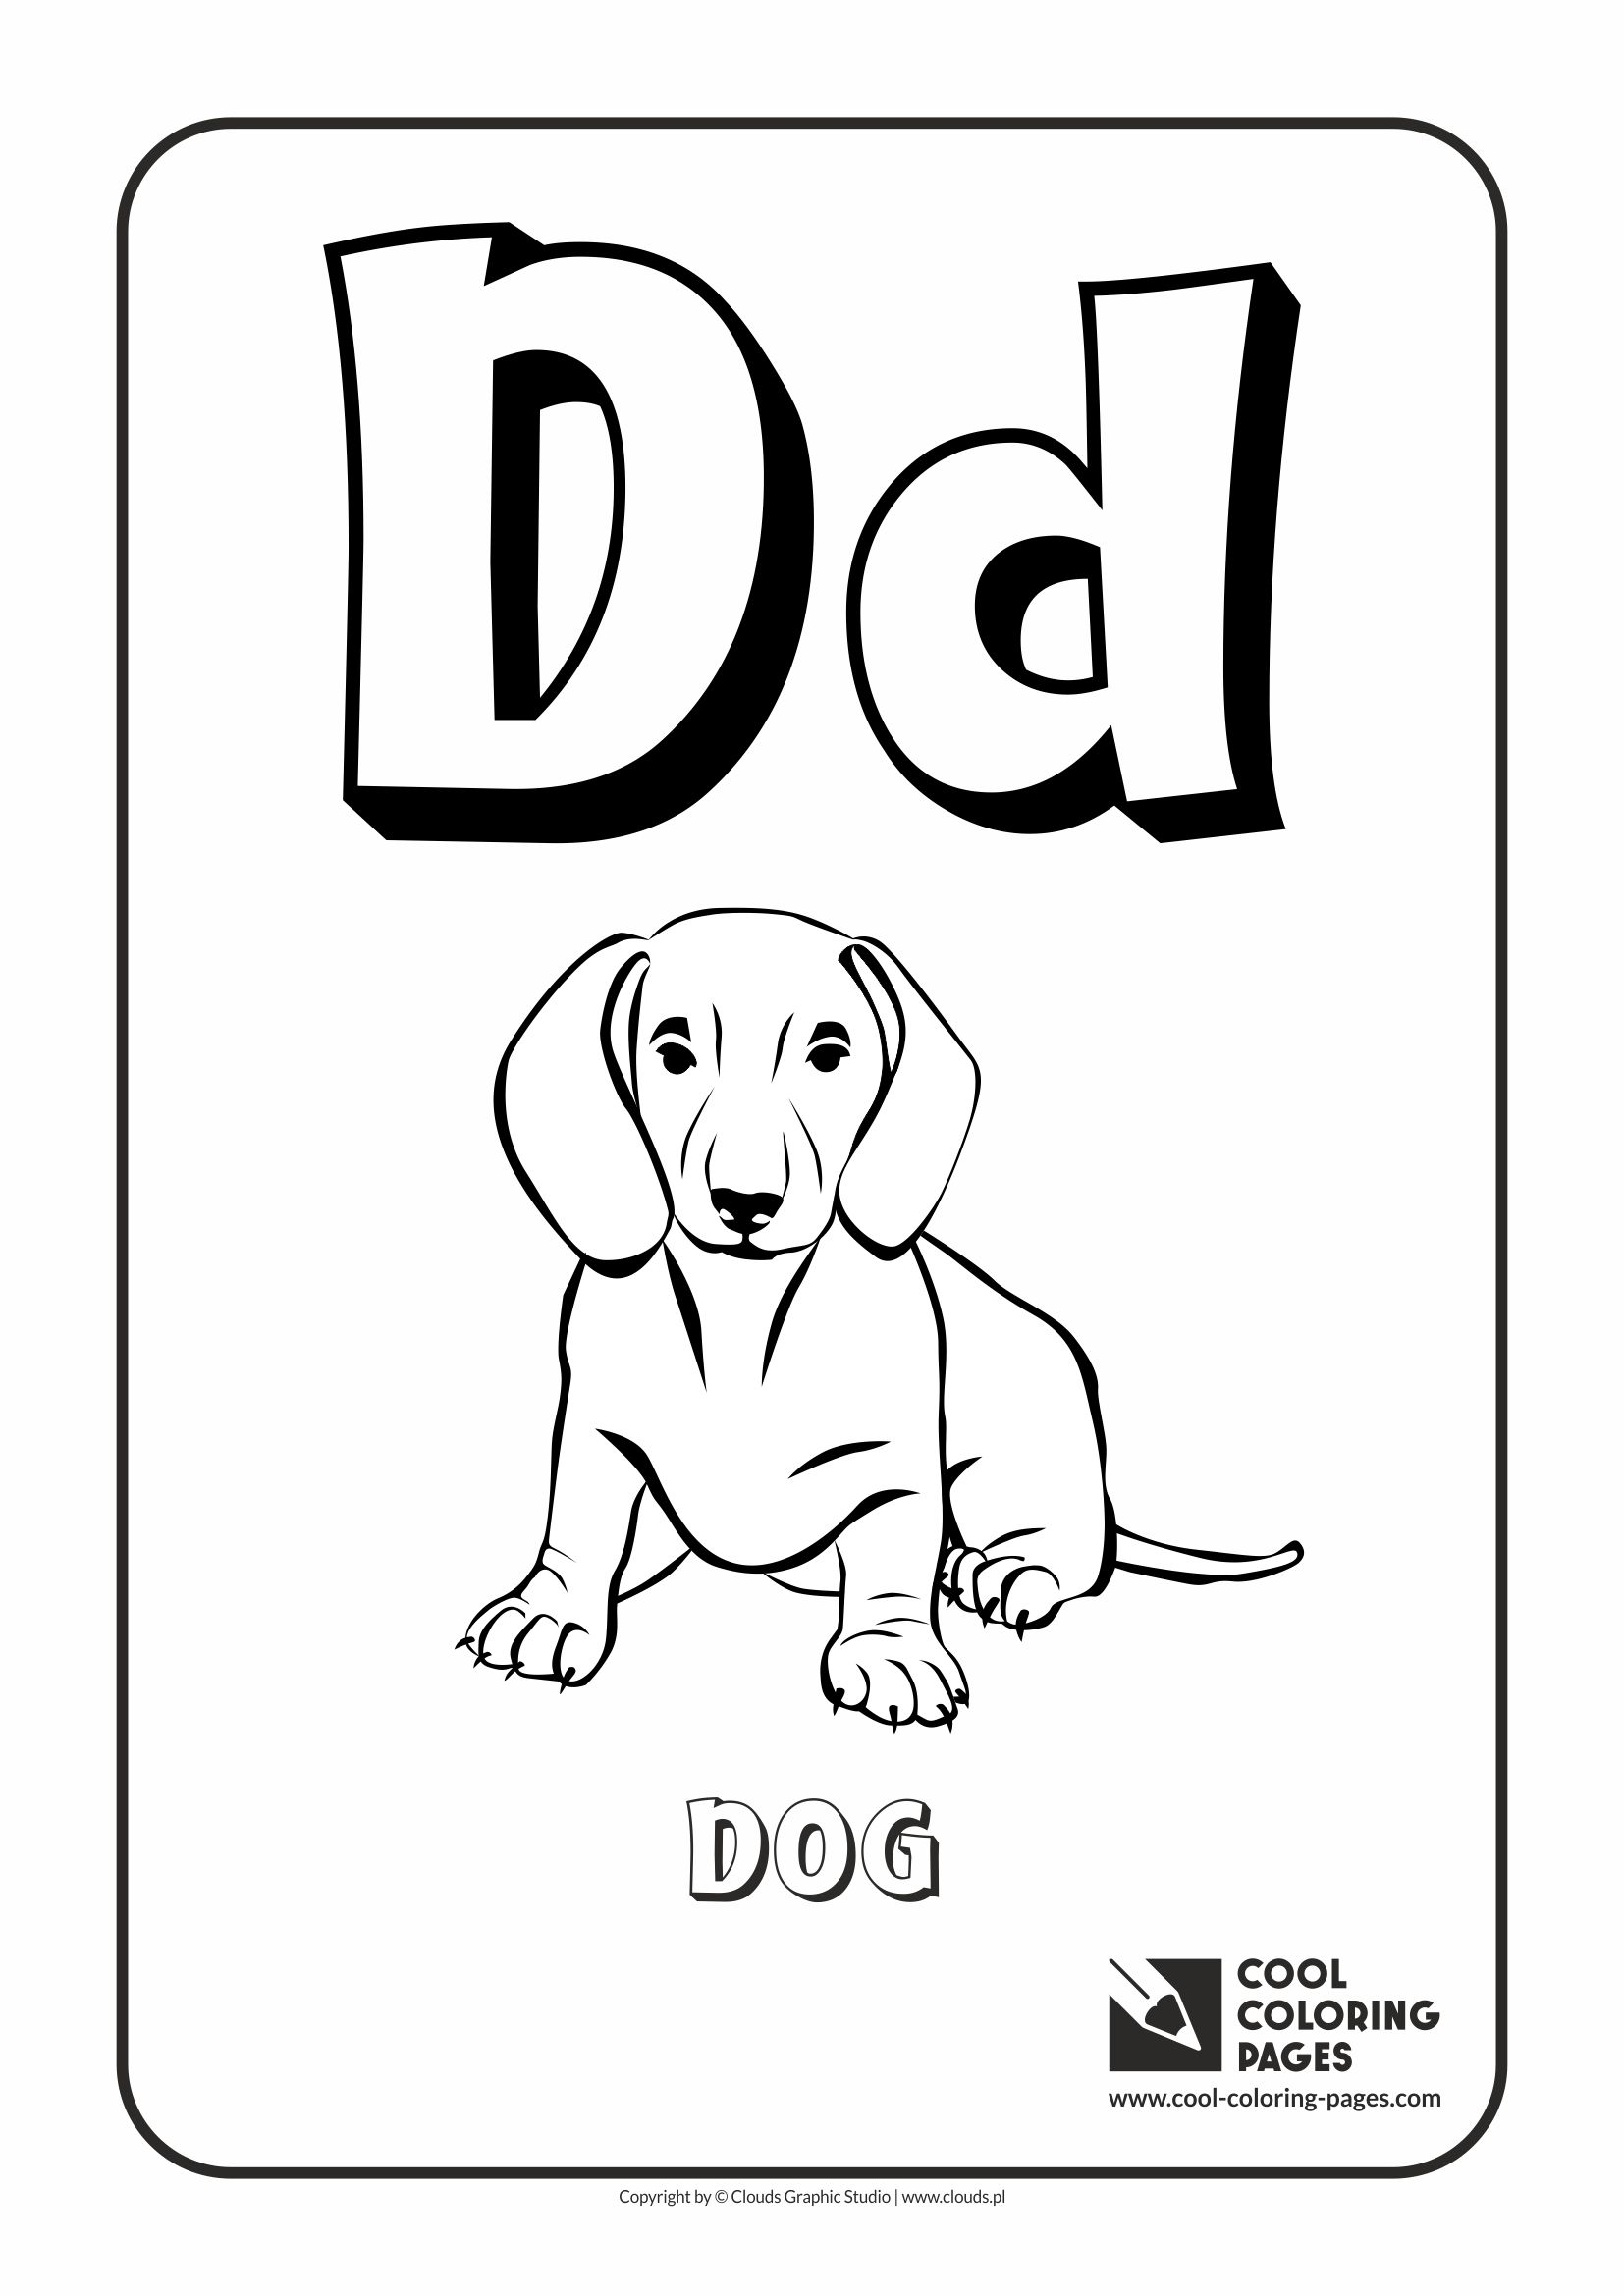 Cool Coloring Pages Alphabet coloring pages - Cool Coloring Pages ...